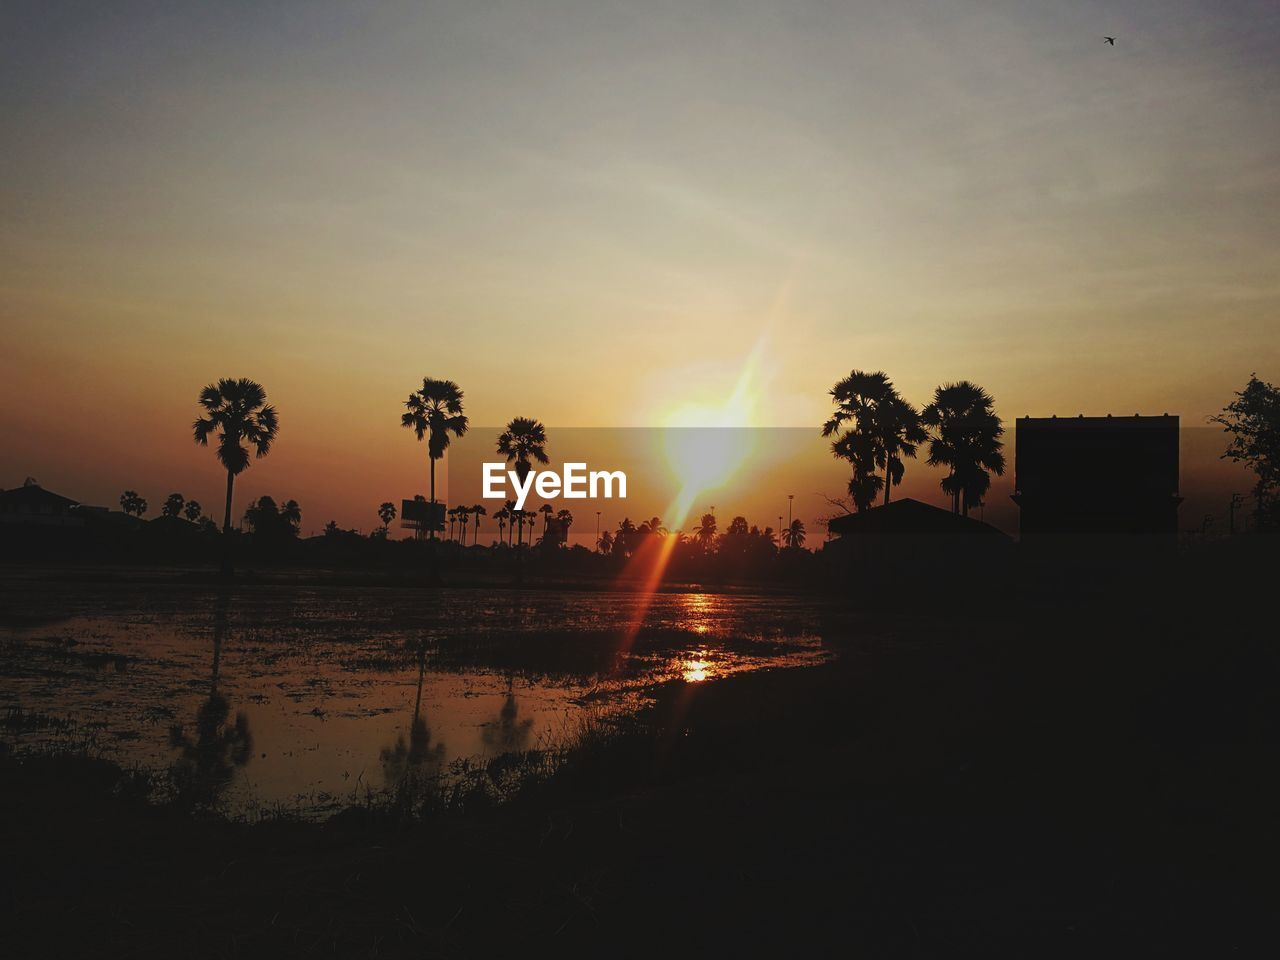 sky, sunset, water, beauty in nature, sun, tree, plant, tranquility, tranquil scene, scenics - nature, reflection, silhouette, sunlight, nature, sunbeam, orange color, no people, palm tree, lens flare, outdoors